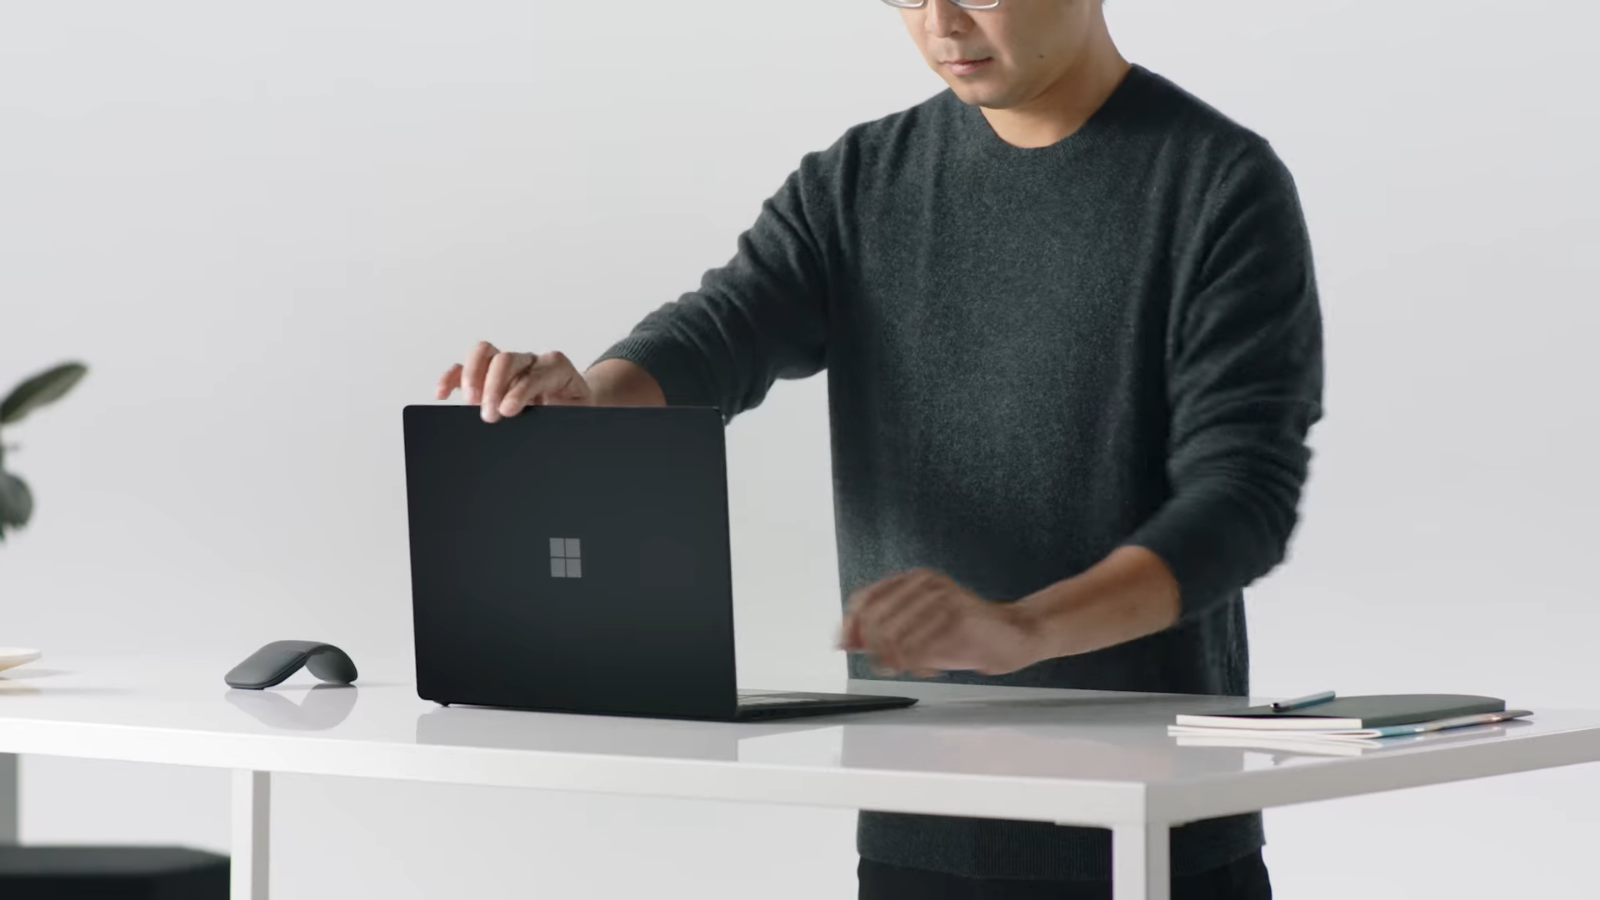 surface laptop 2, surface, usb-c, ports, surface laptop